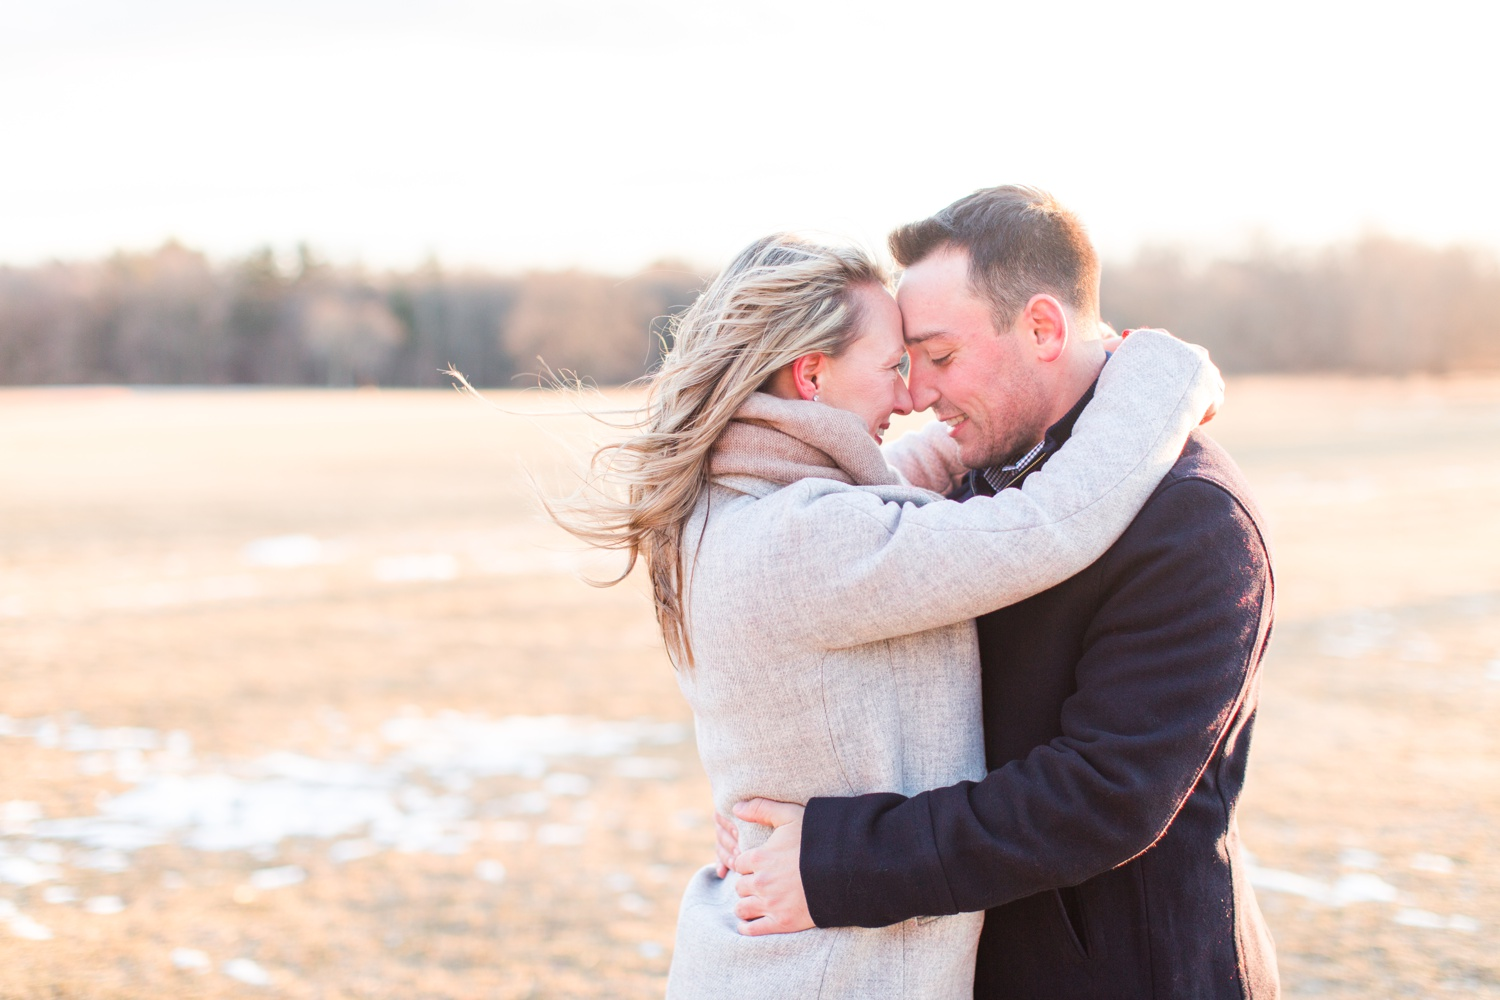 waveny-park-engagement-session-connecticut-westchester-nyc-wedding-photographer-shaina-lee-photography-photo-33.jpg